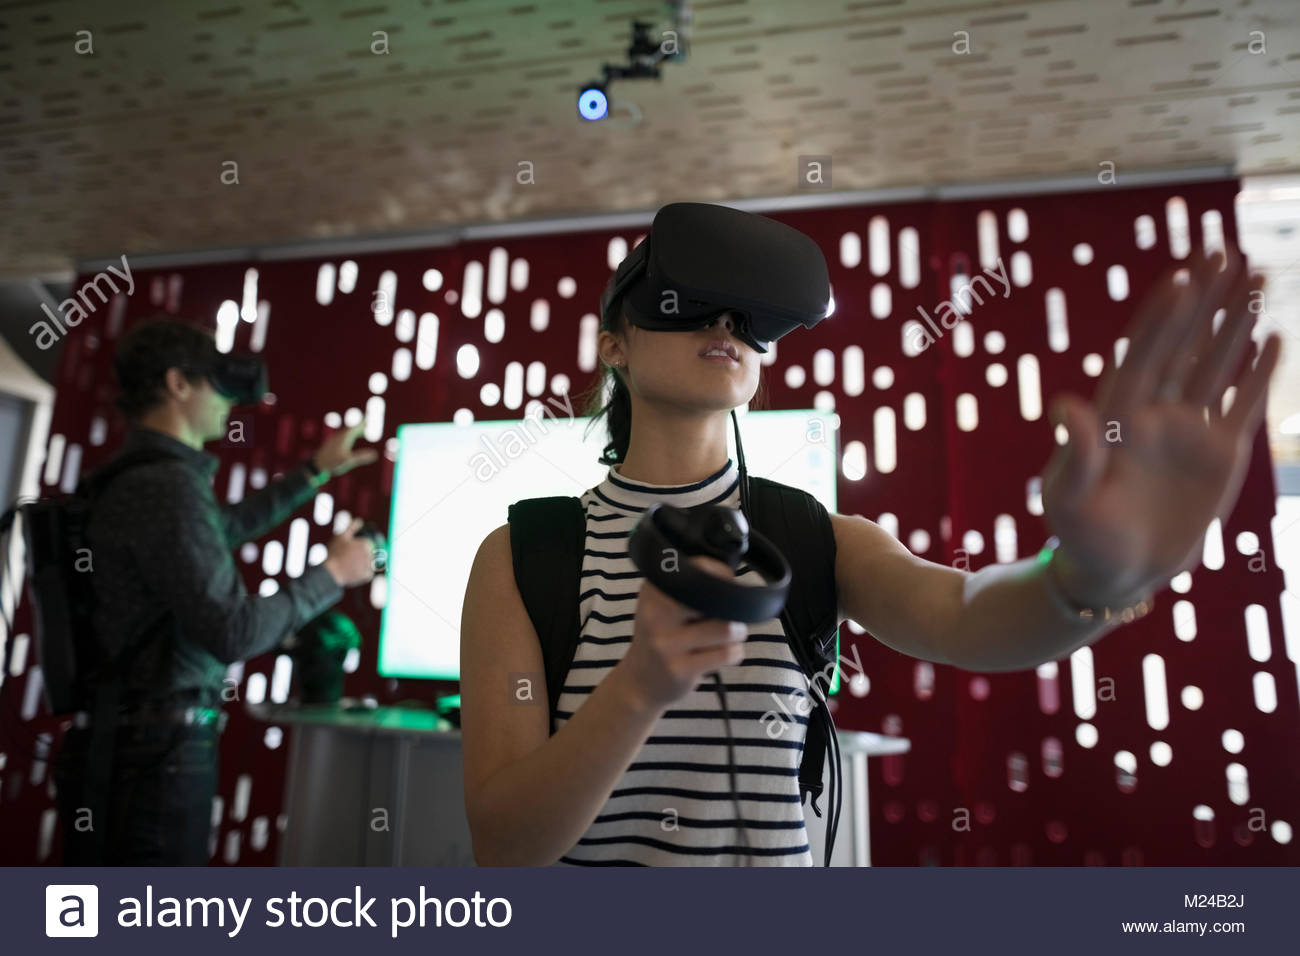 Computer programmer testing virtual reality simulator glasses and joysticks in office - Stock Image